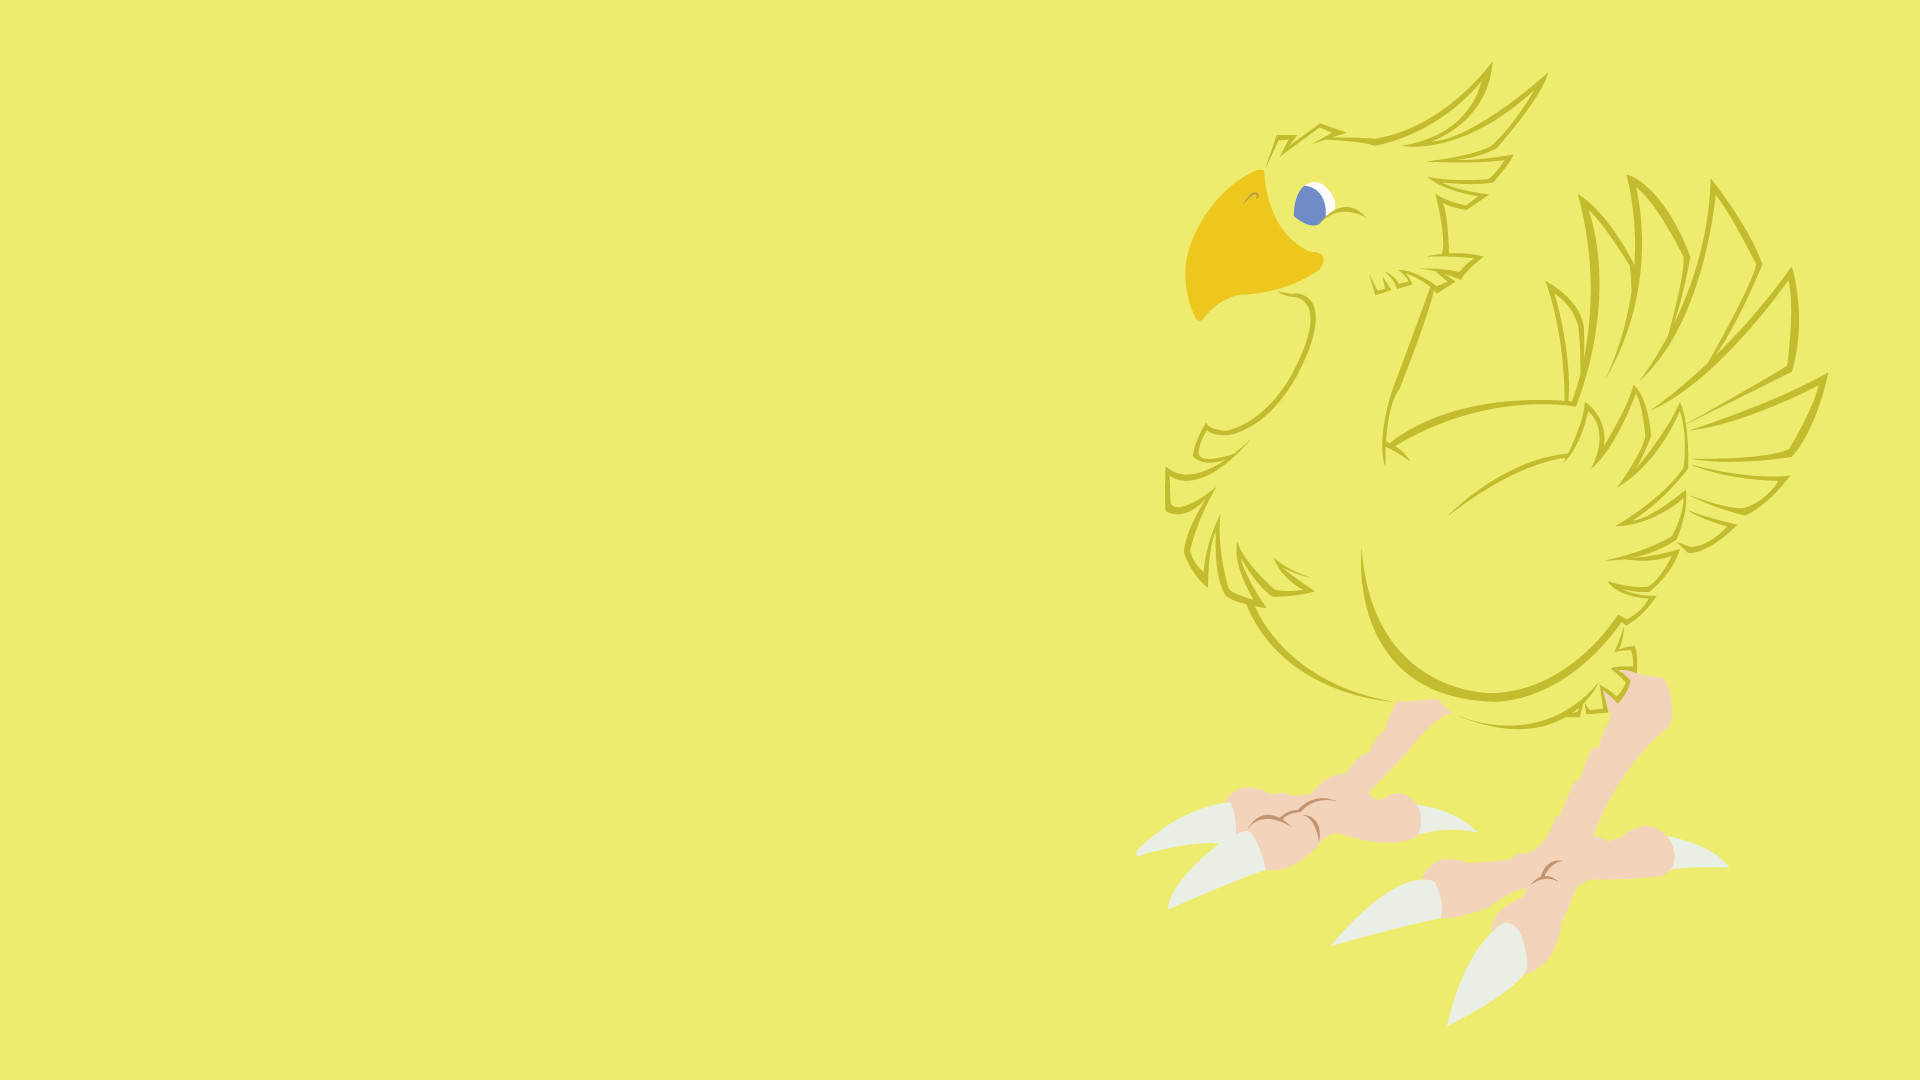 Res: 1920x1080, Chocobo by LimeCatMastr Chocobo by LimeCatMastr